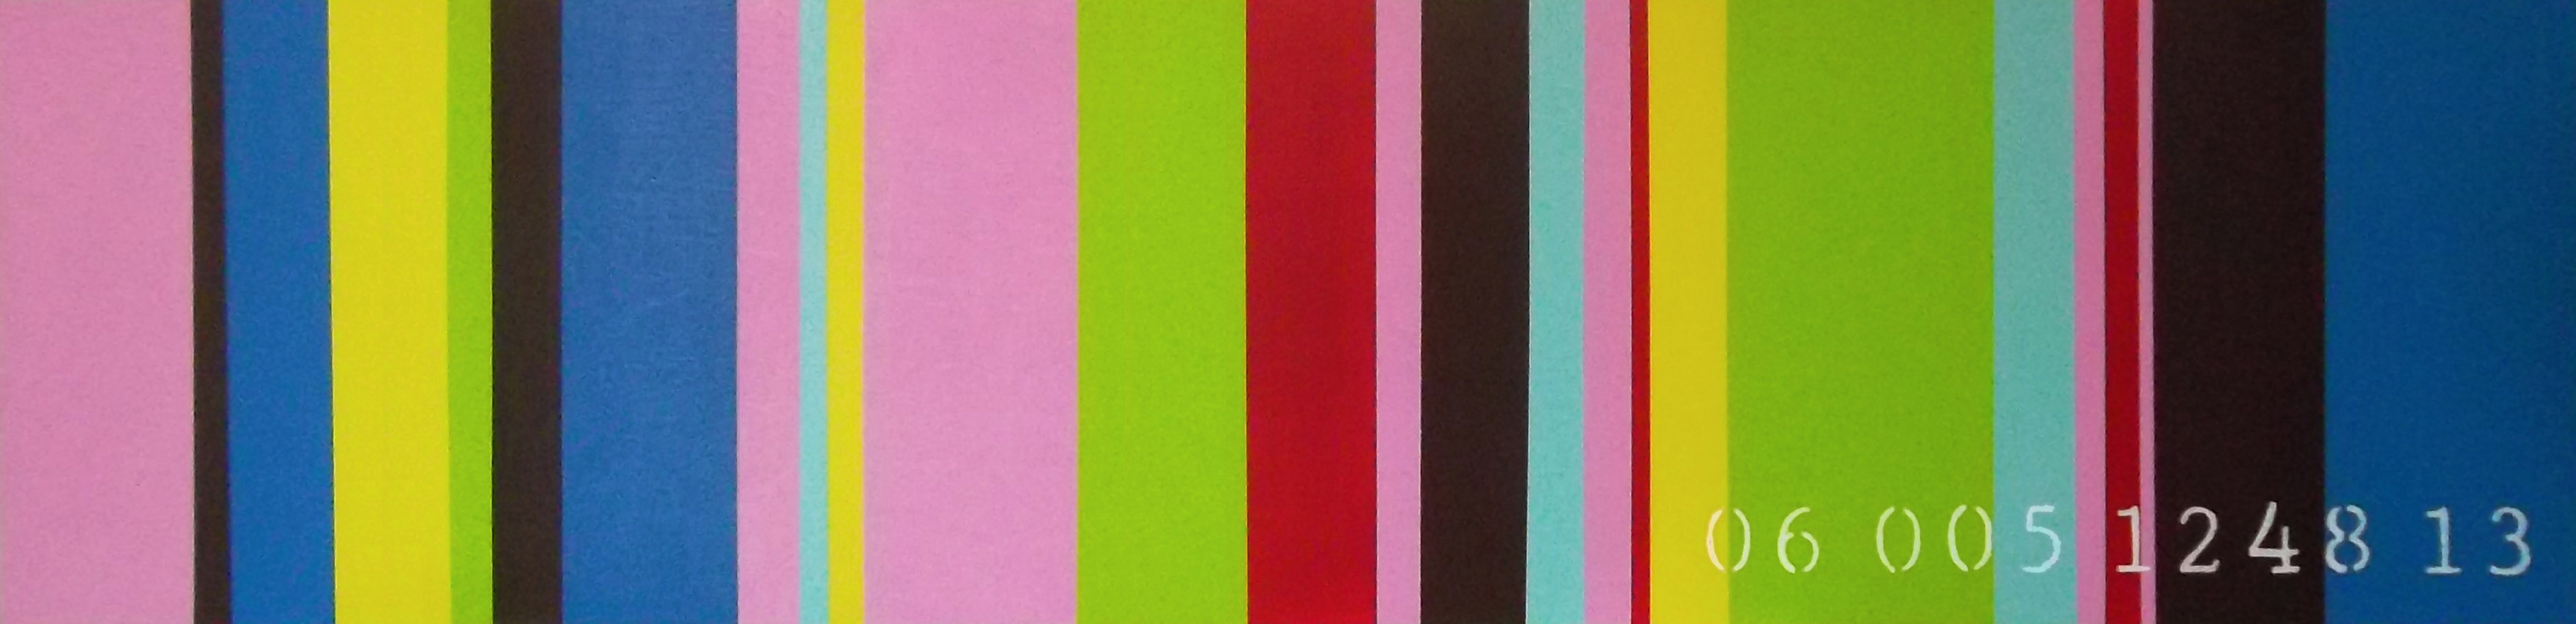 commodity of colour 06 005 1248 13 janet bright 5th in series 2013